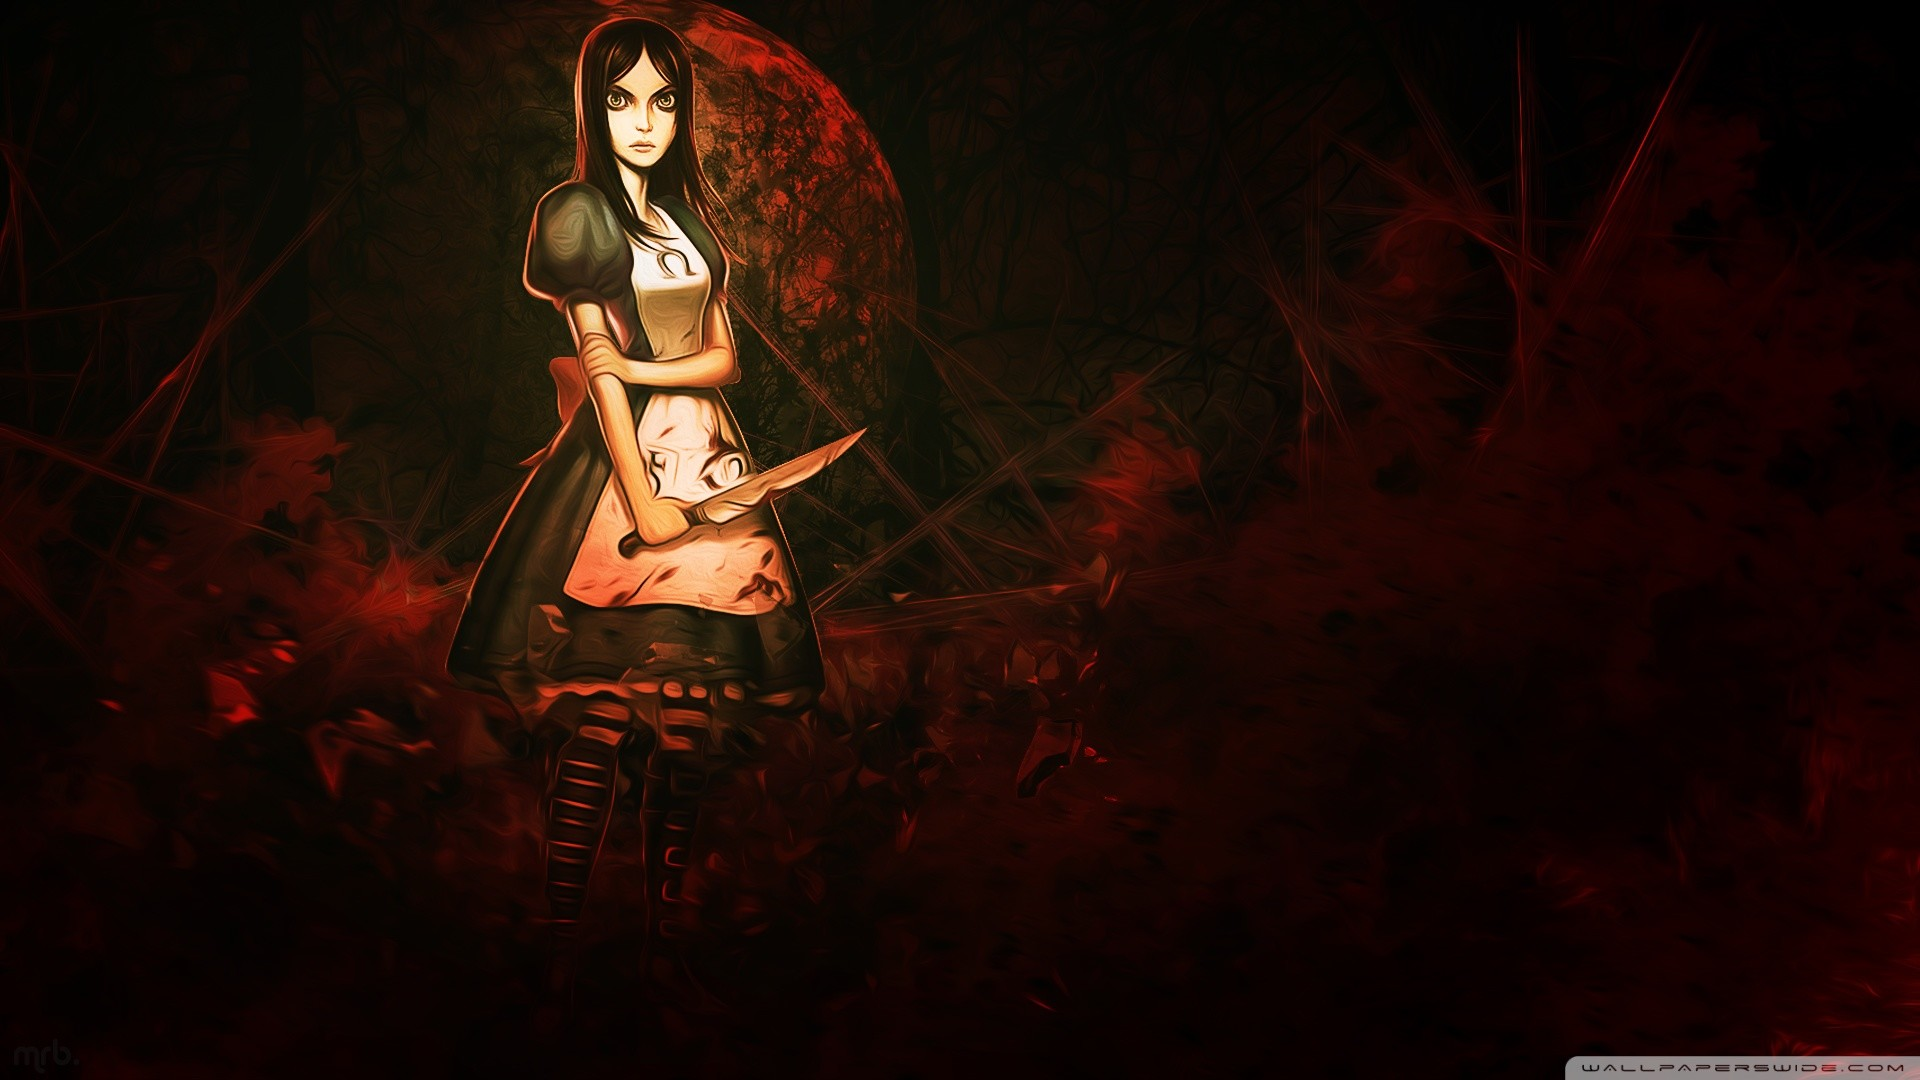 Alice Madness Returns Wallpaper Alice Madness Returns Wallpaper | HD  Wallpapers | Pinterest | Alice madness returns, Alice madness and Hd  wallpaper